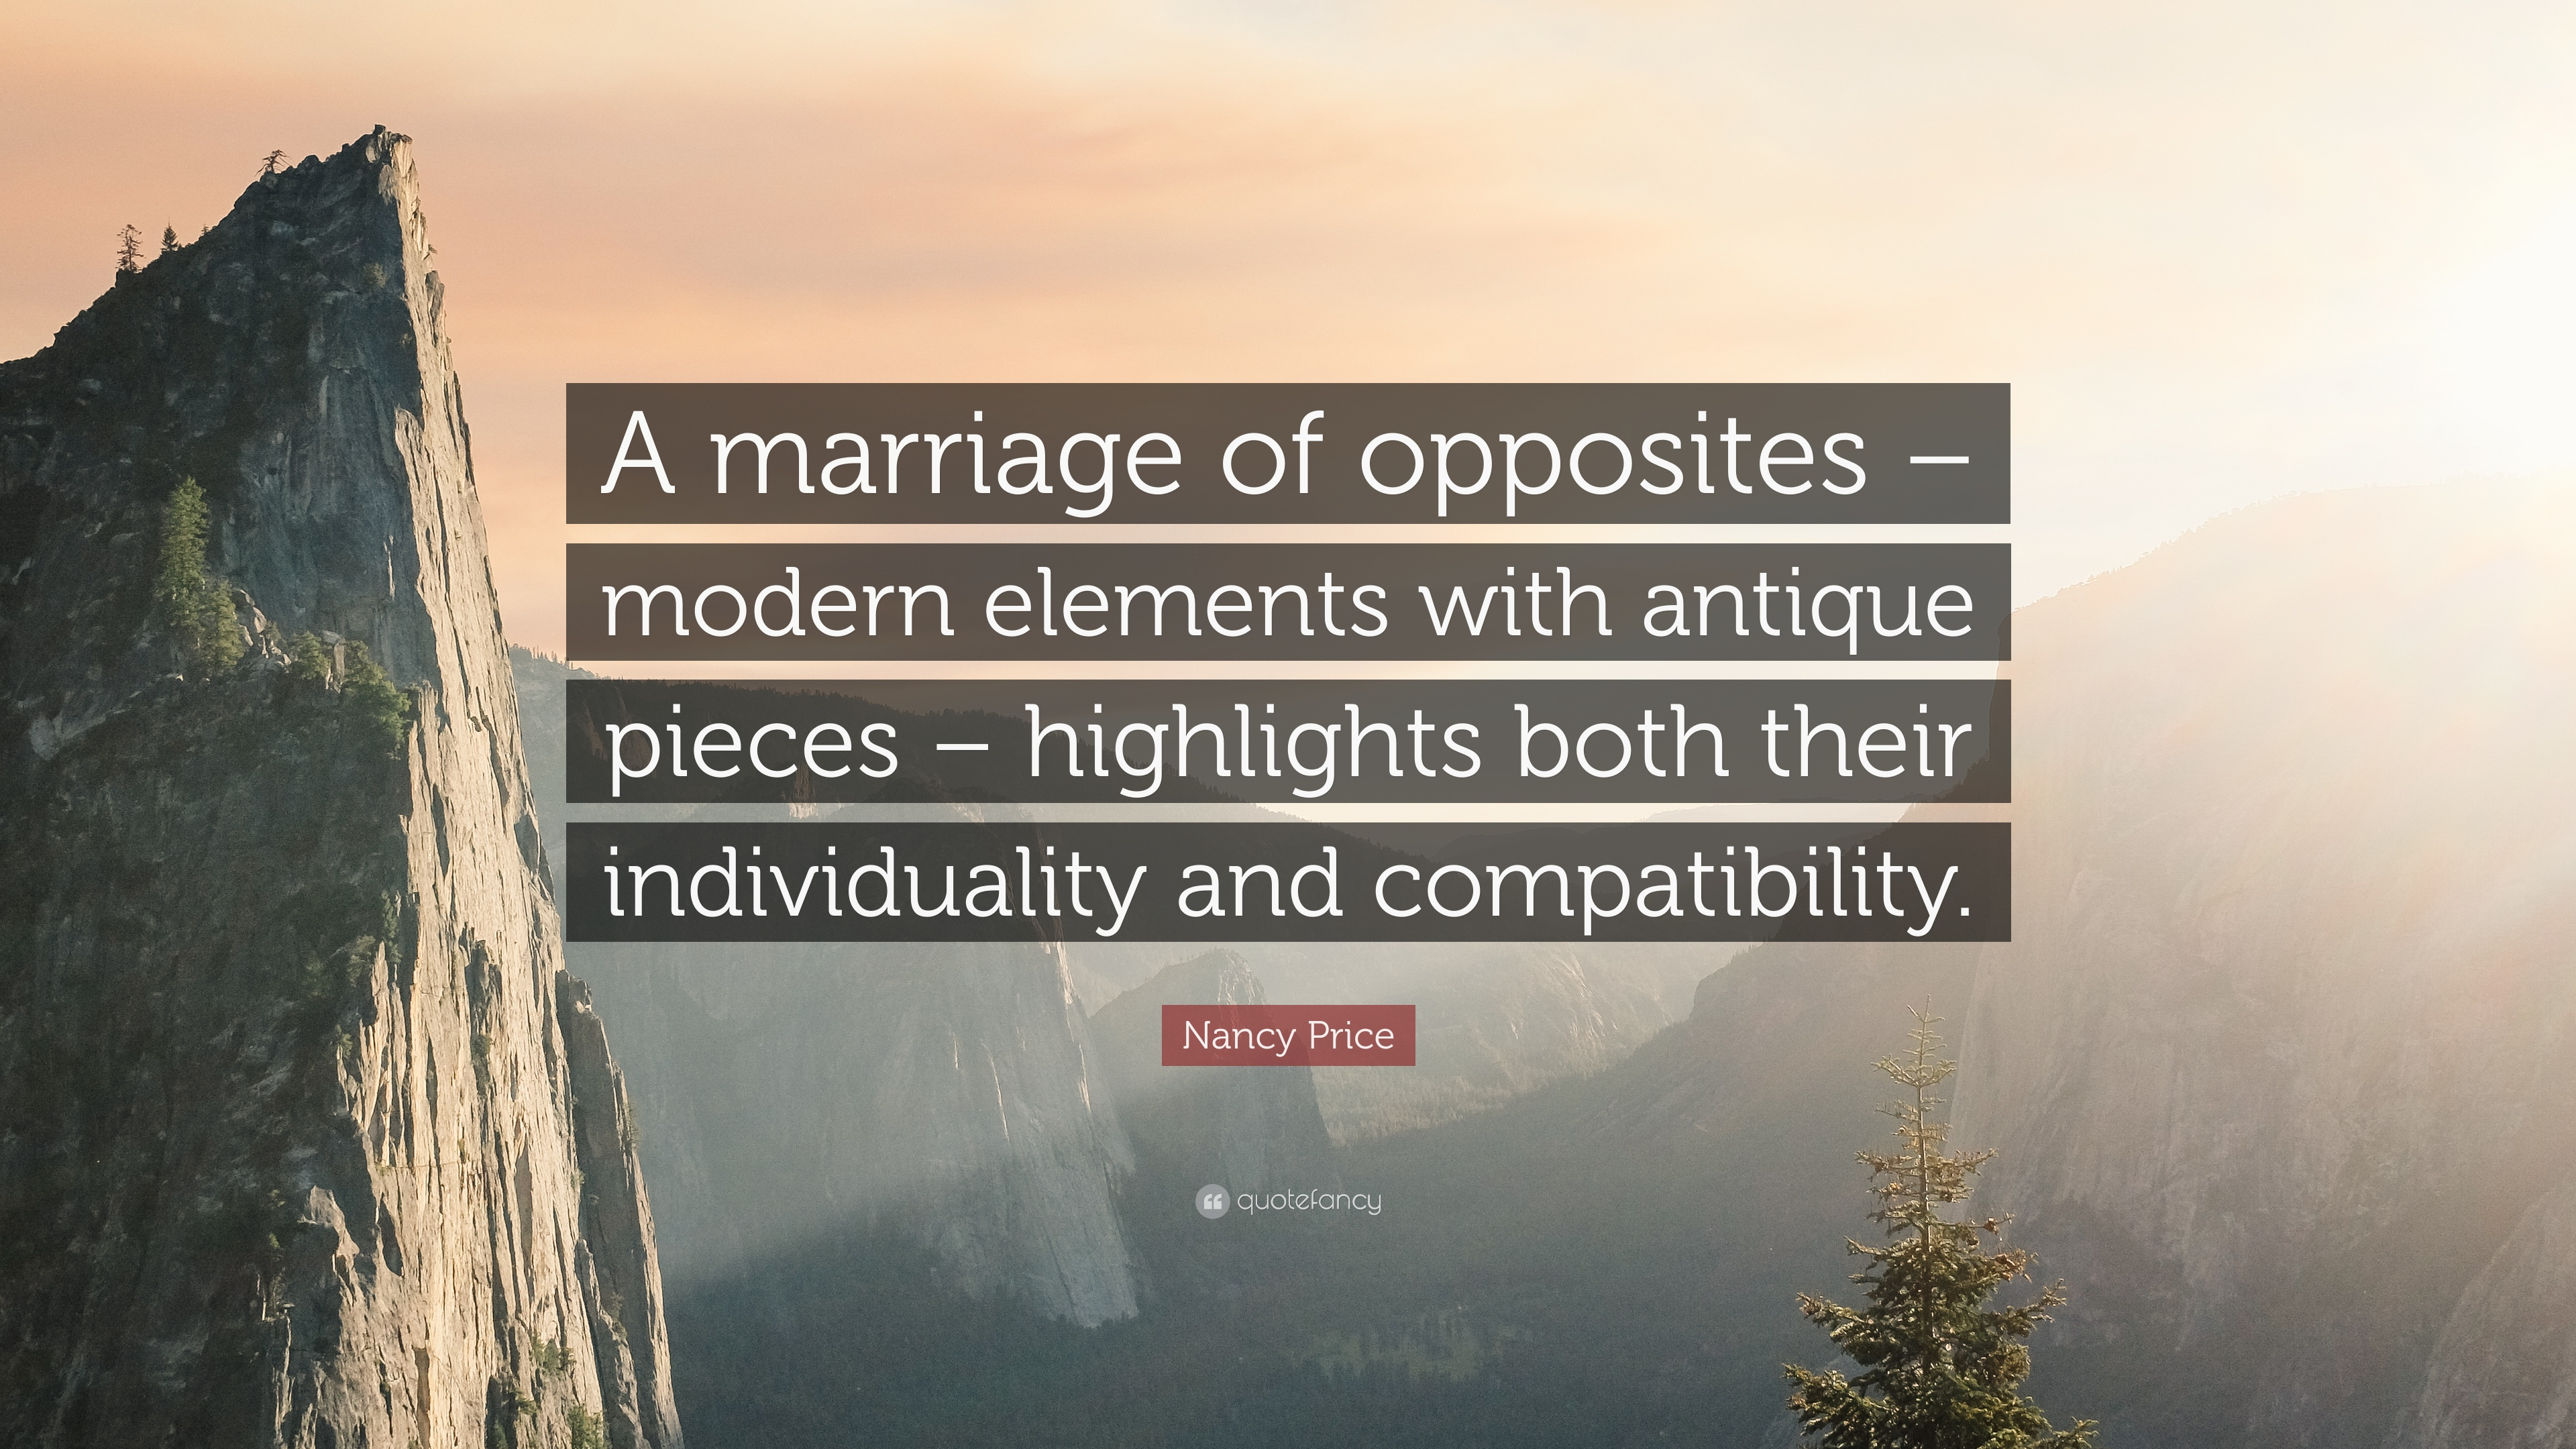 Wonderful Nancy Price Quote: U201cA Marriage Of Opposites U2013 Modern Elements With Antique  Pieces U2013